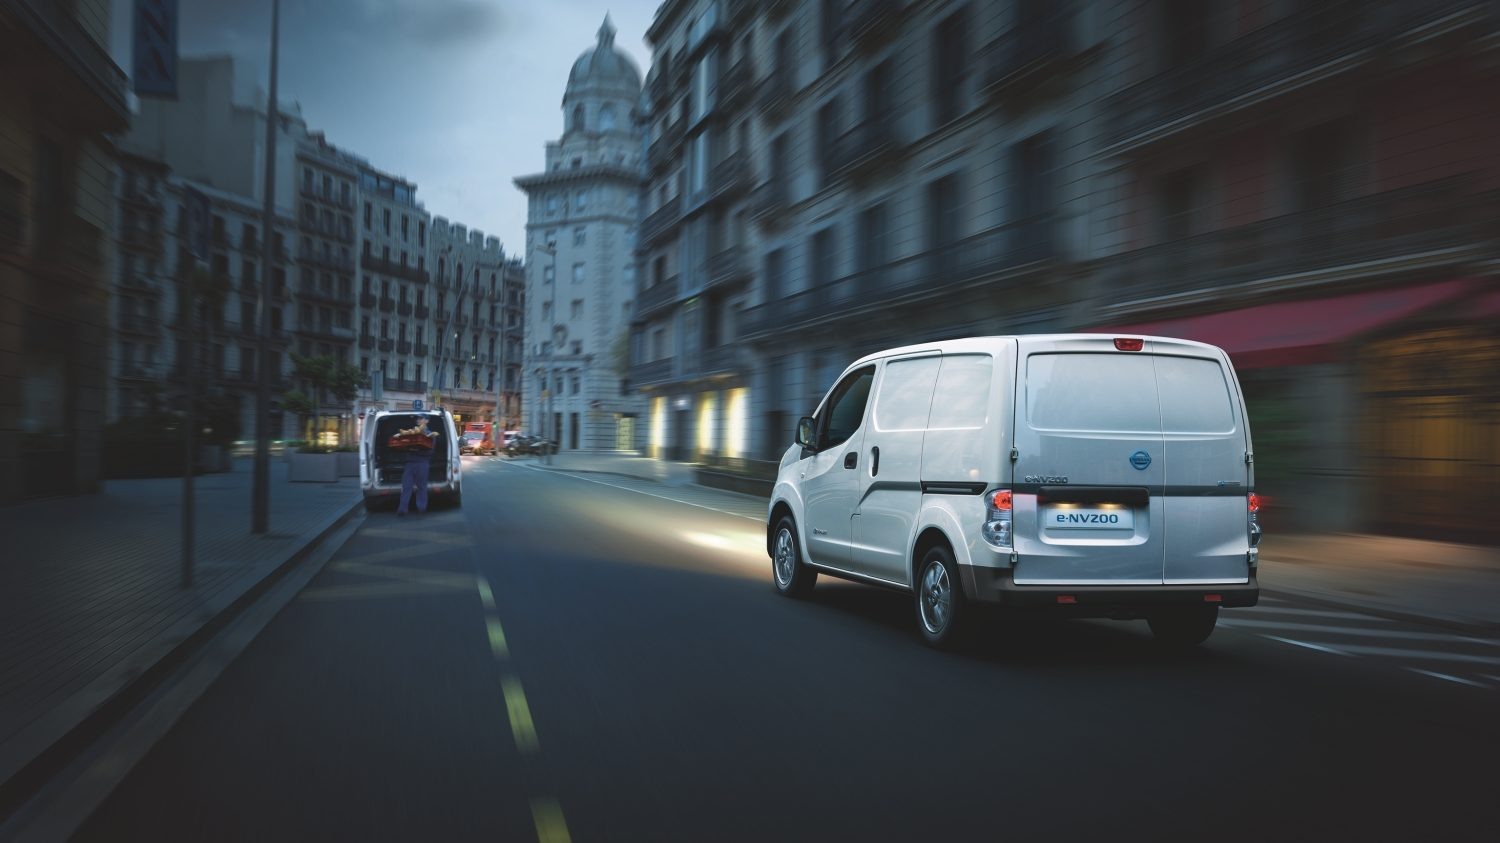 Nissan e-NV200 - Rear angle while driving in the city at night